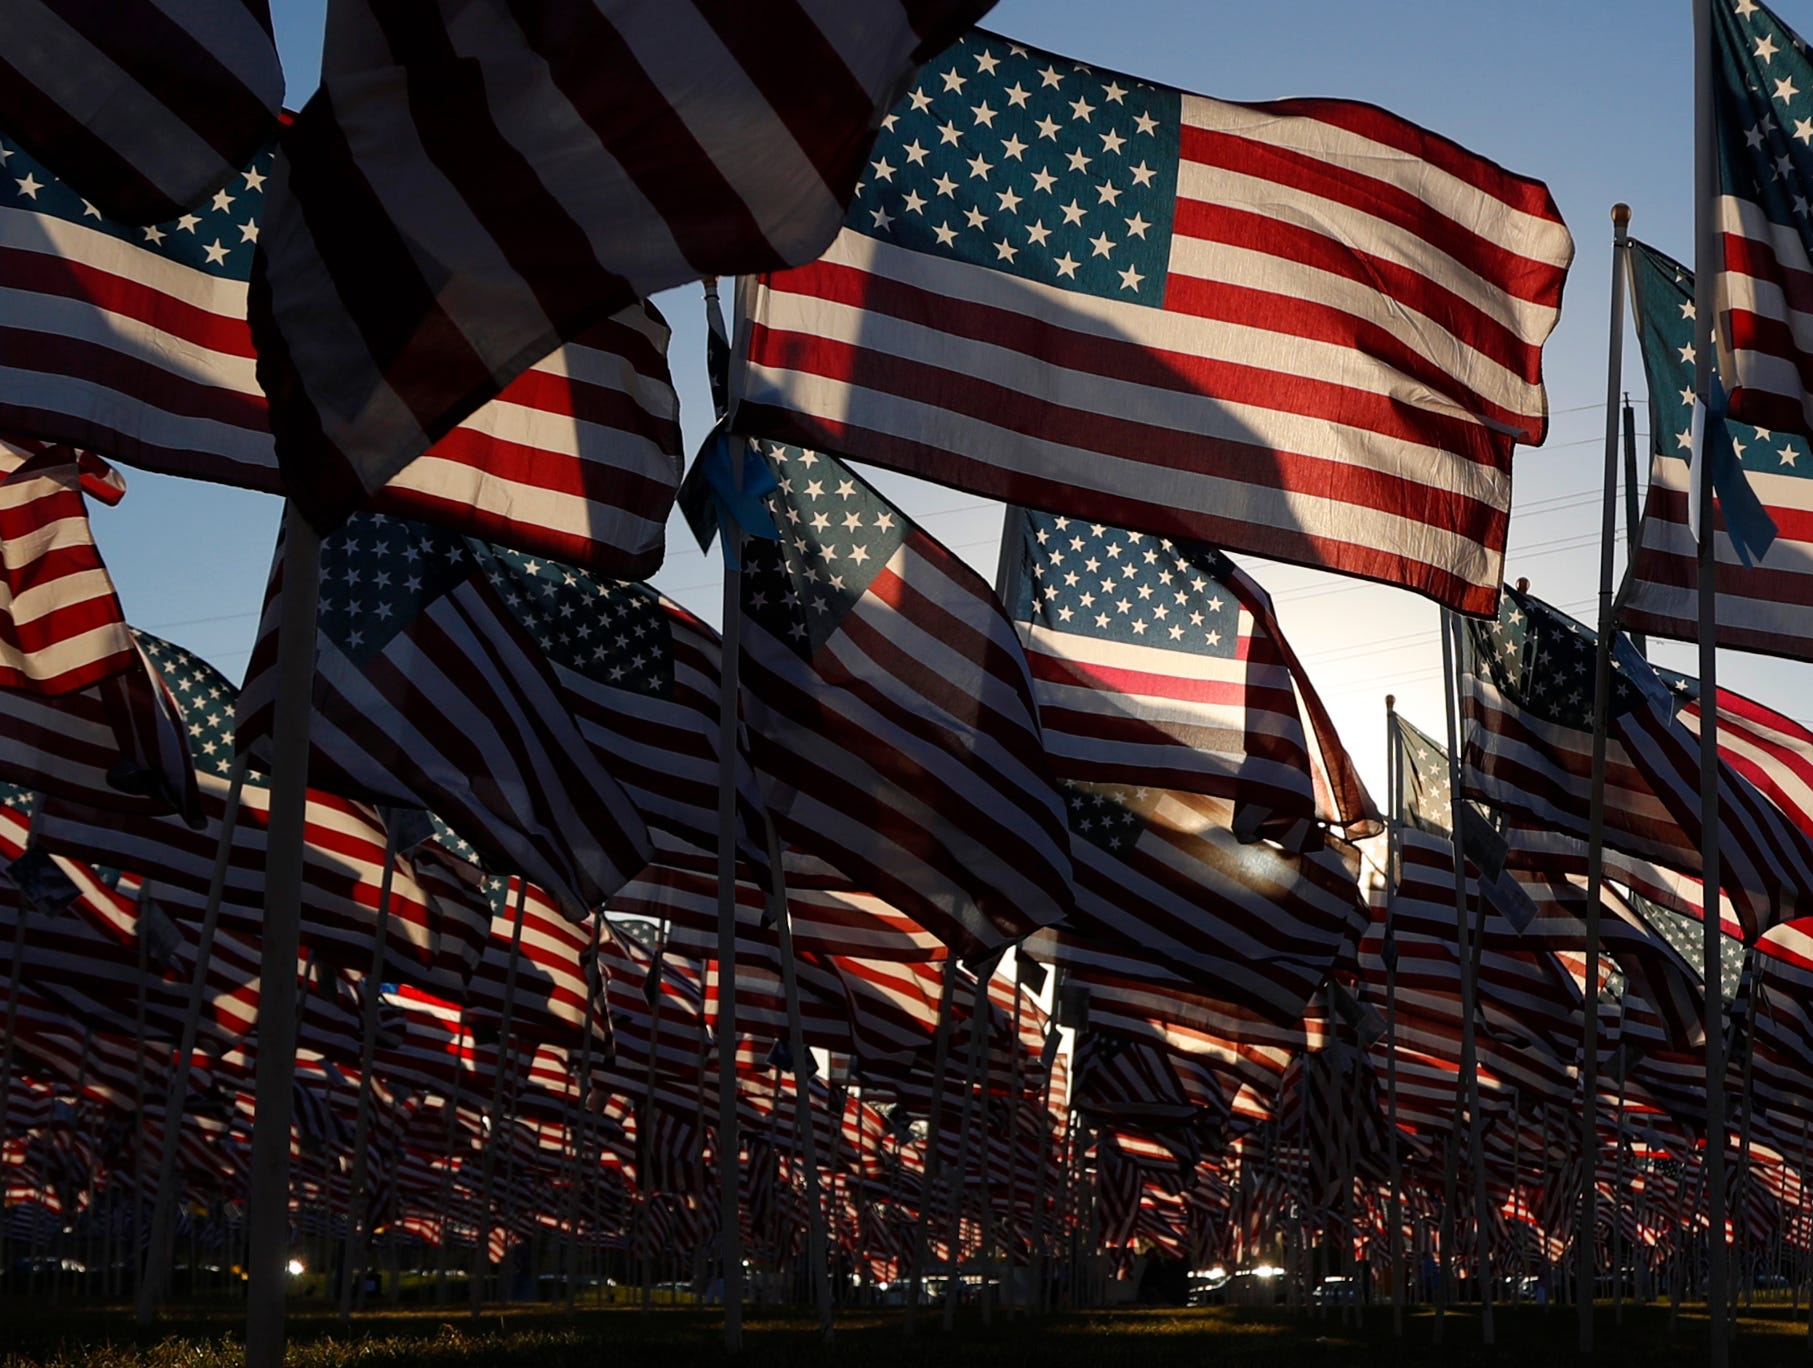 American flags wave in the wind at the Healing Field at Tempe Beach Park in Tempe on Sept. 10, 2018.